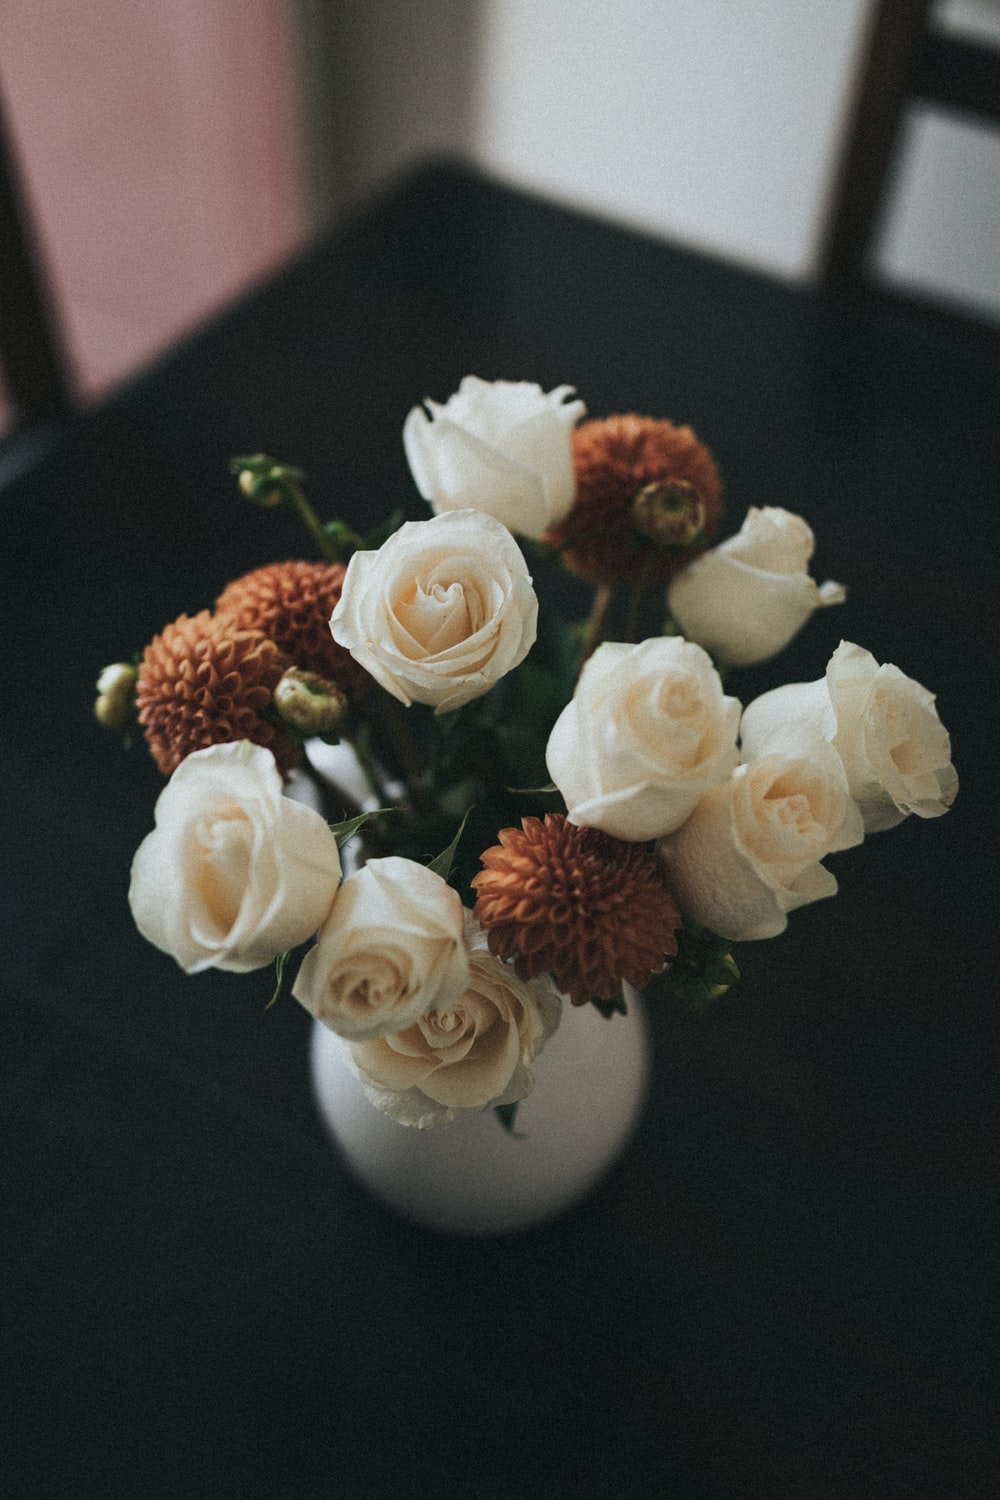 white and orange flower arrangement in white ceramic vase on table